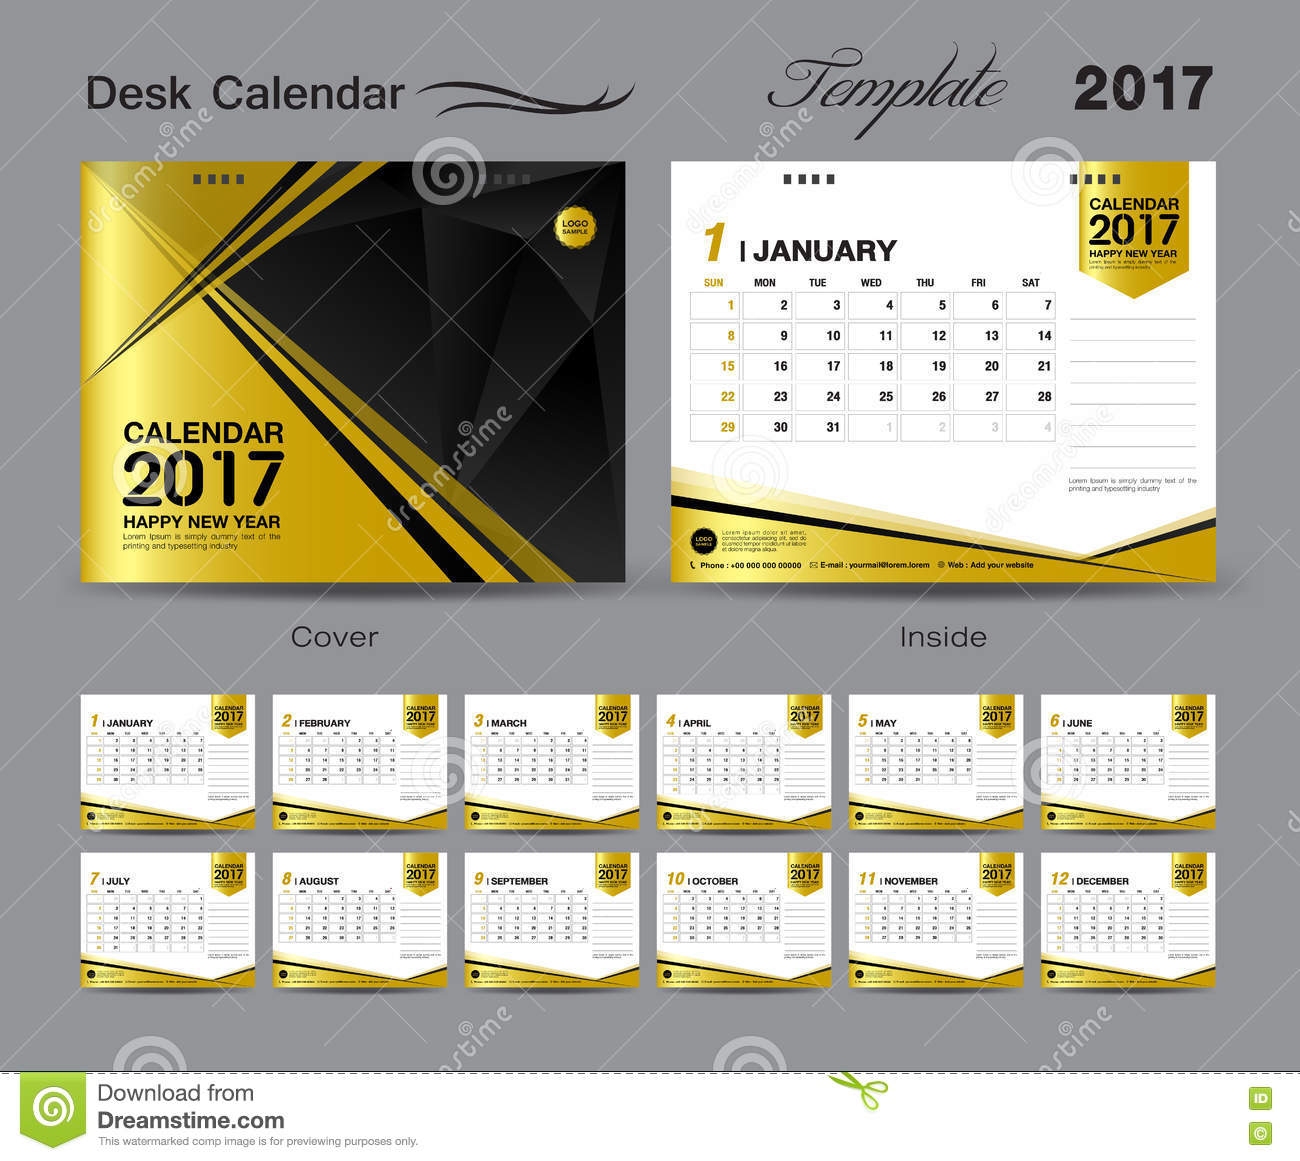 Desk Calendar Design : Set gold desk calendar template design cover